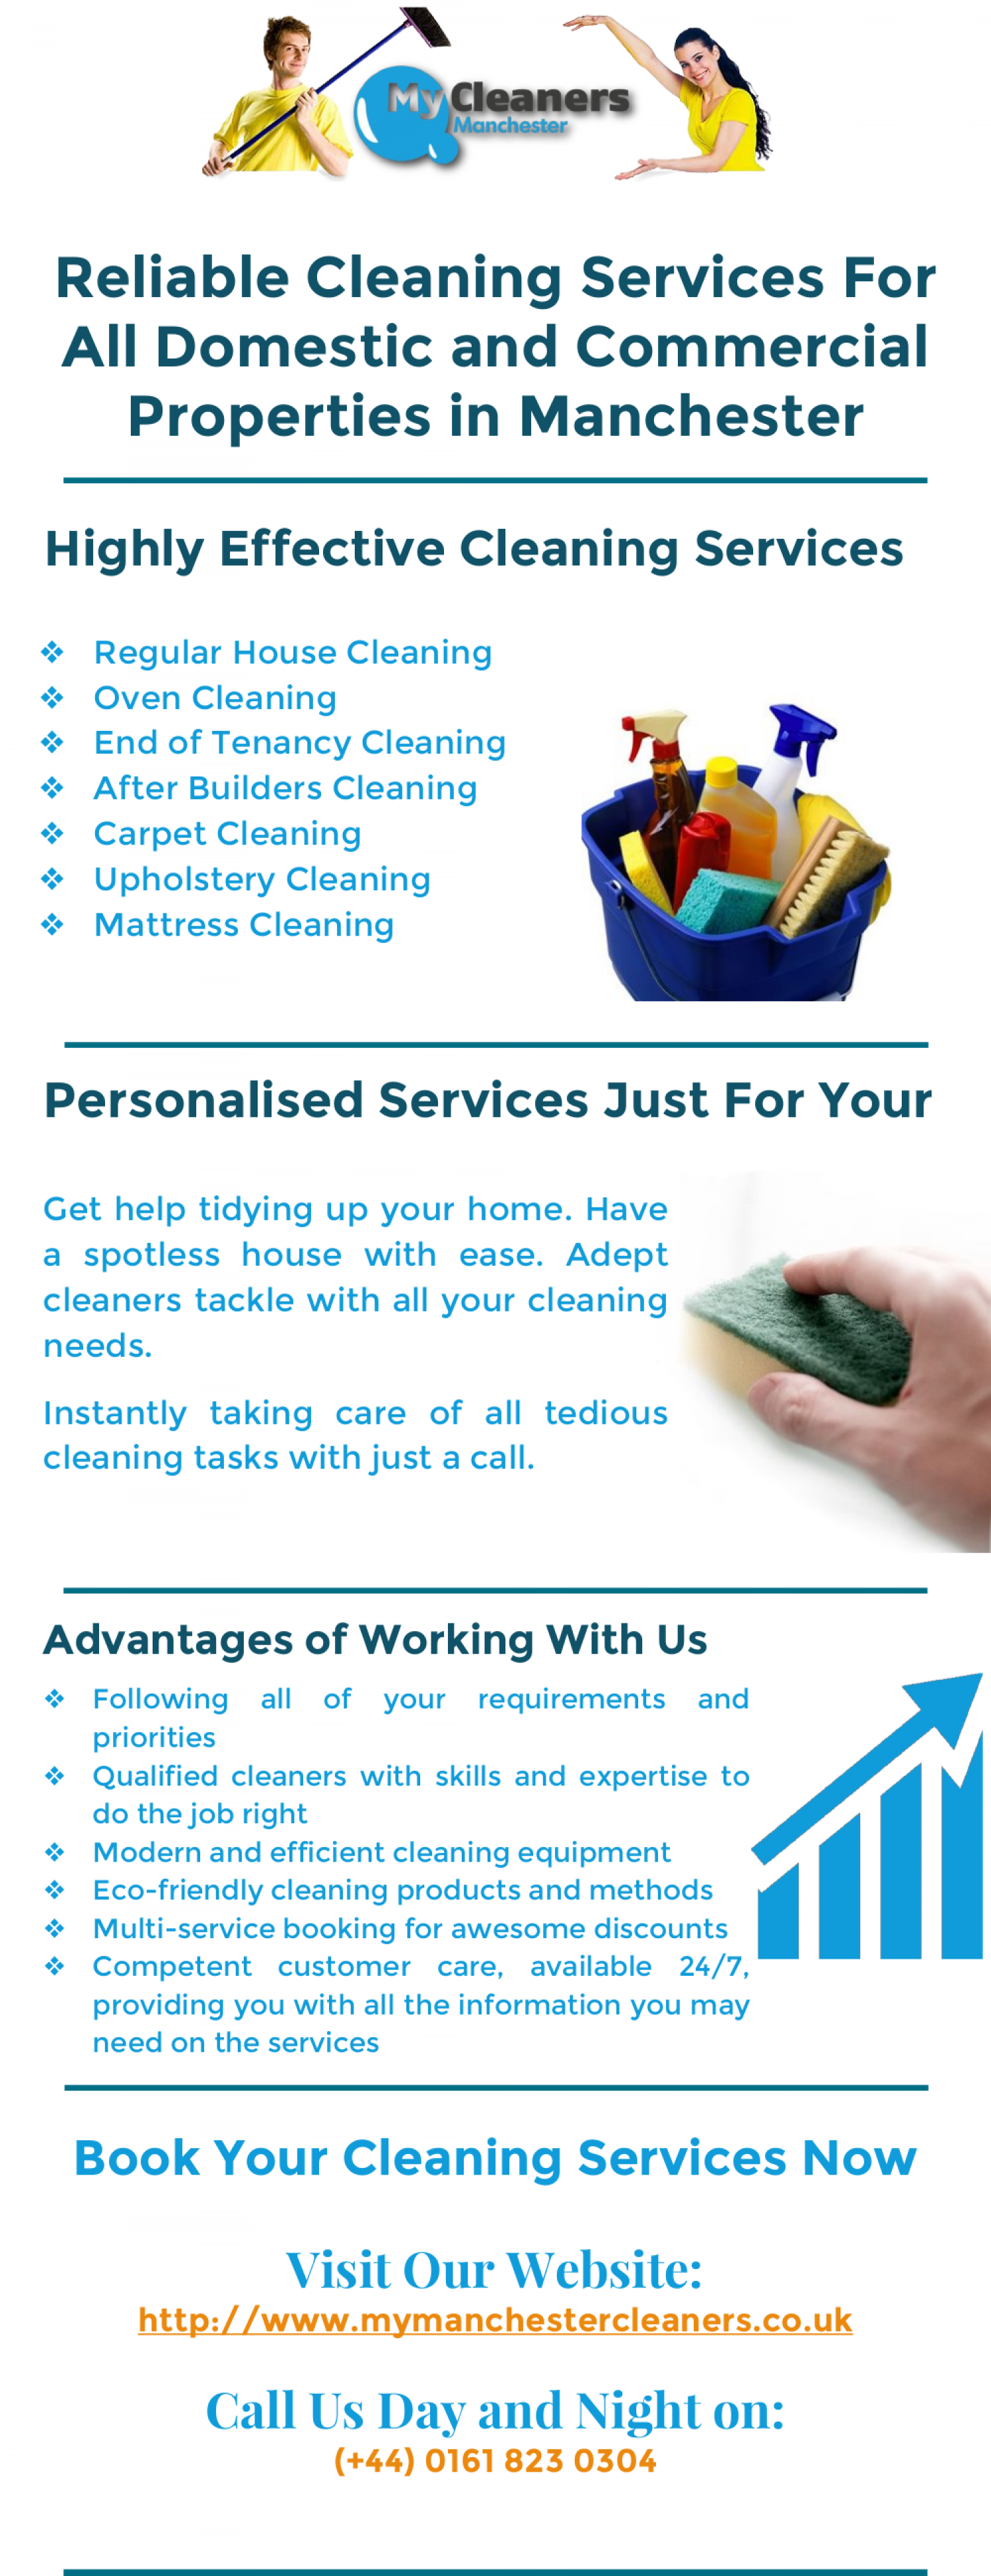 Reputable Manchester Cleaning Company Infographic